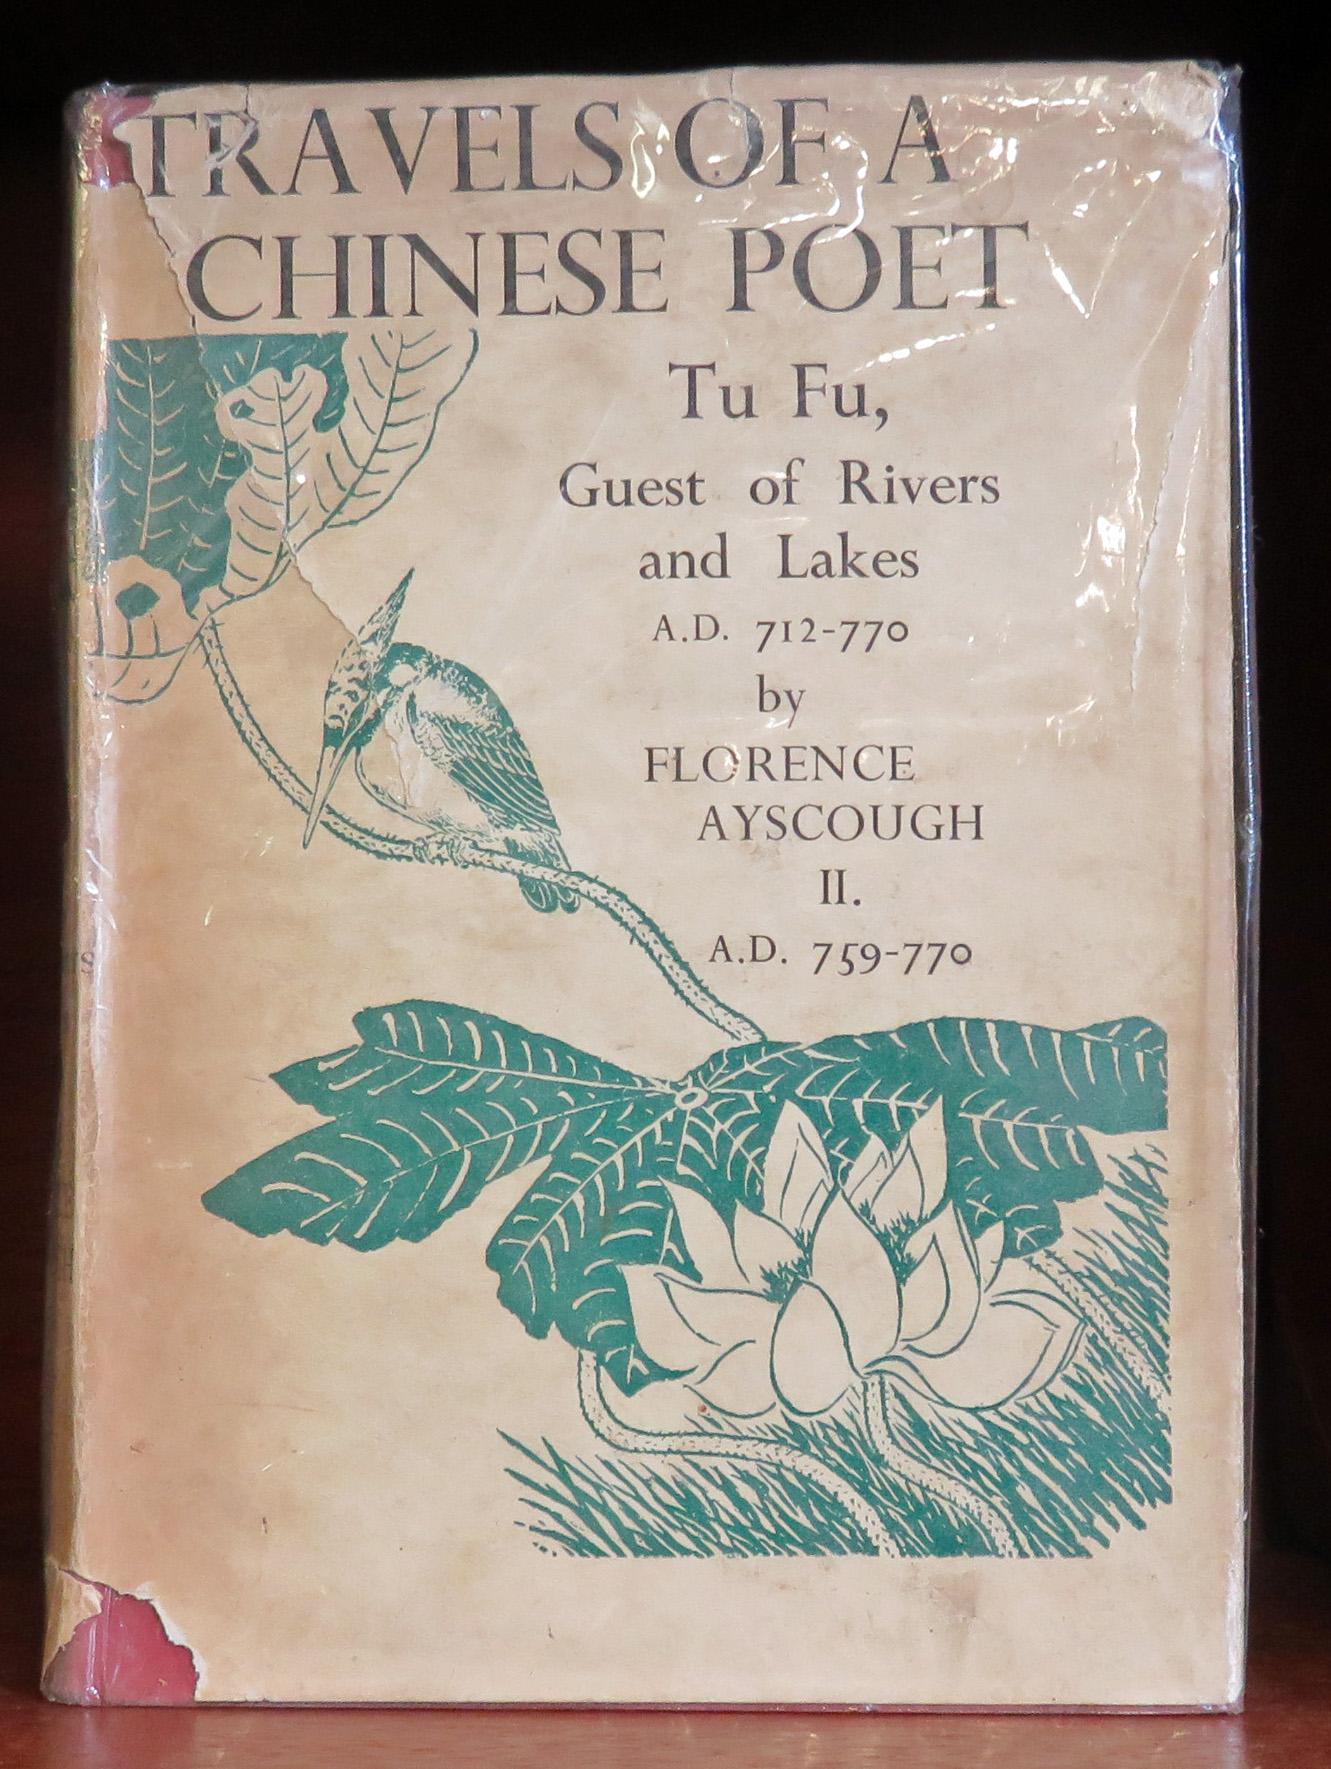 Travels of a Chinese Poet Tu Fu, Guest of Rivers and Lakes AD 712-770 Volume 2 Only